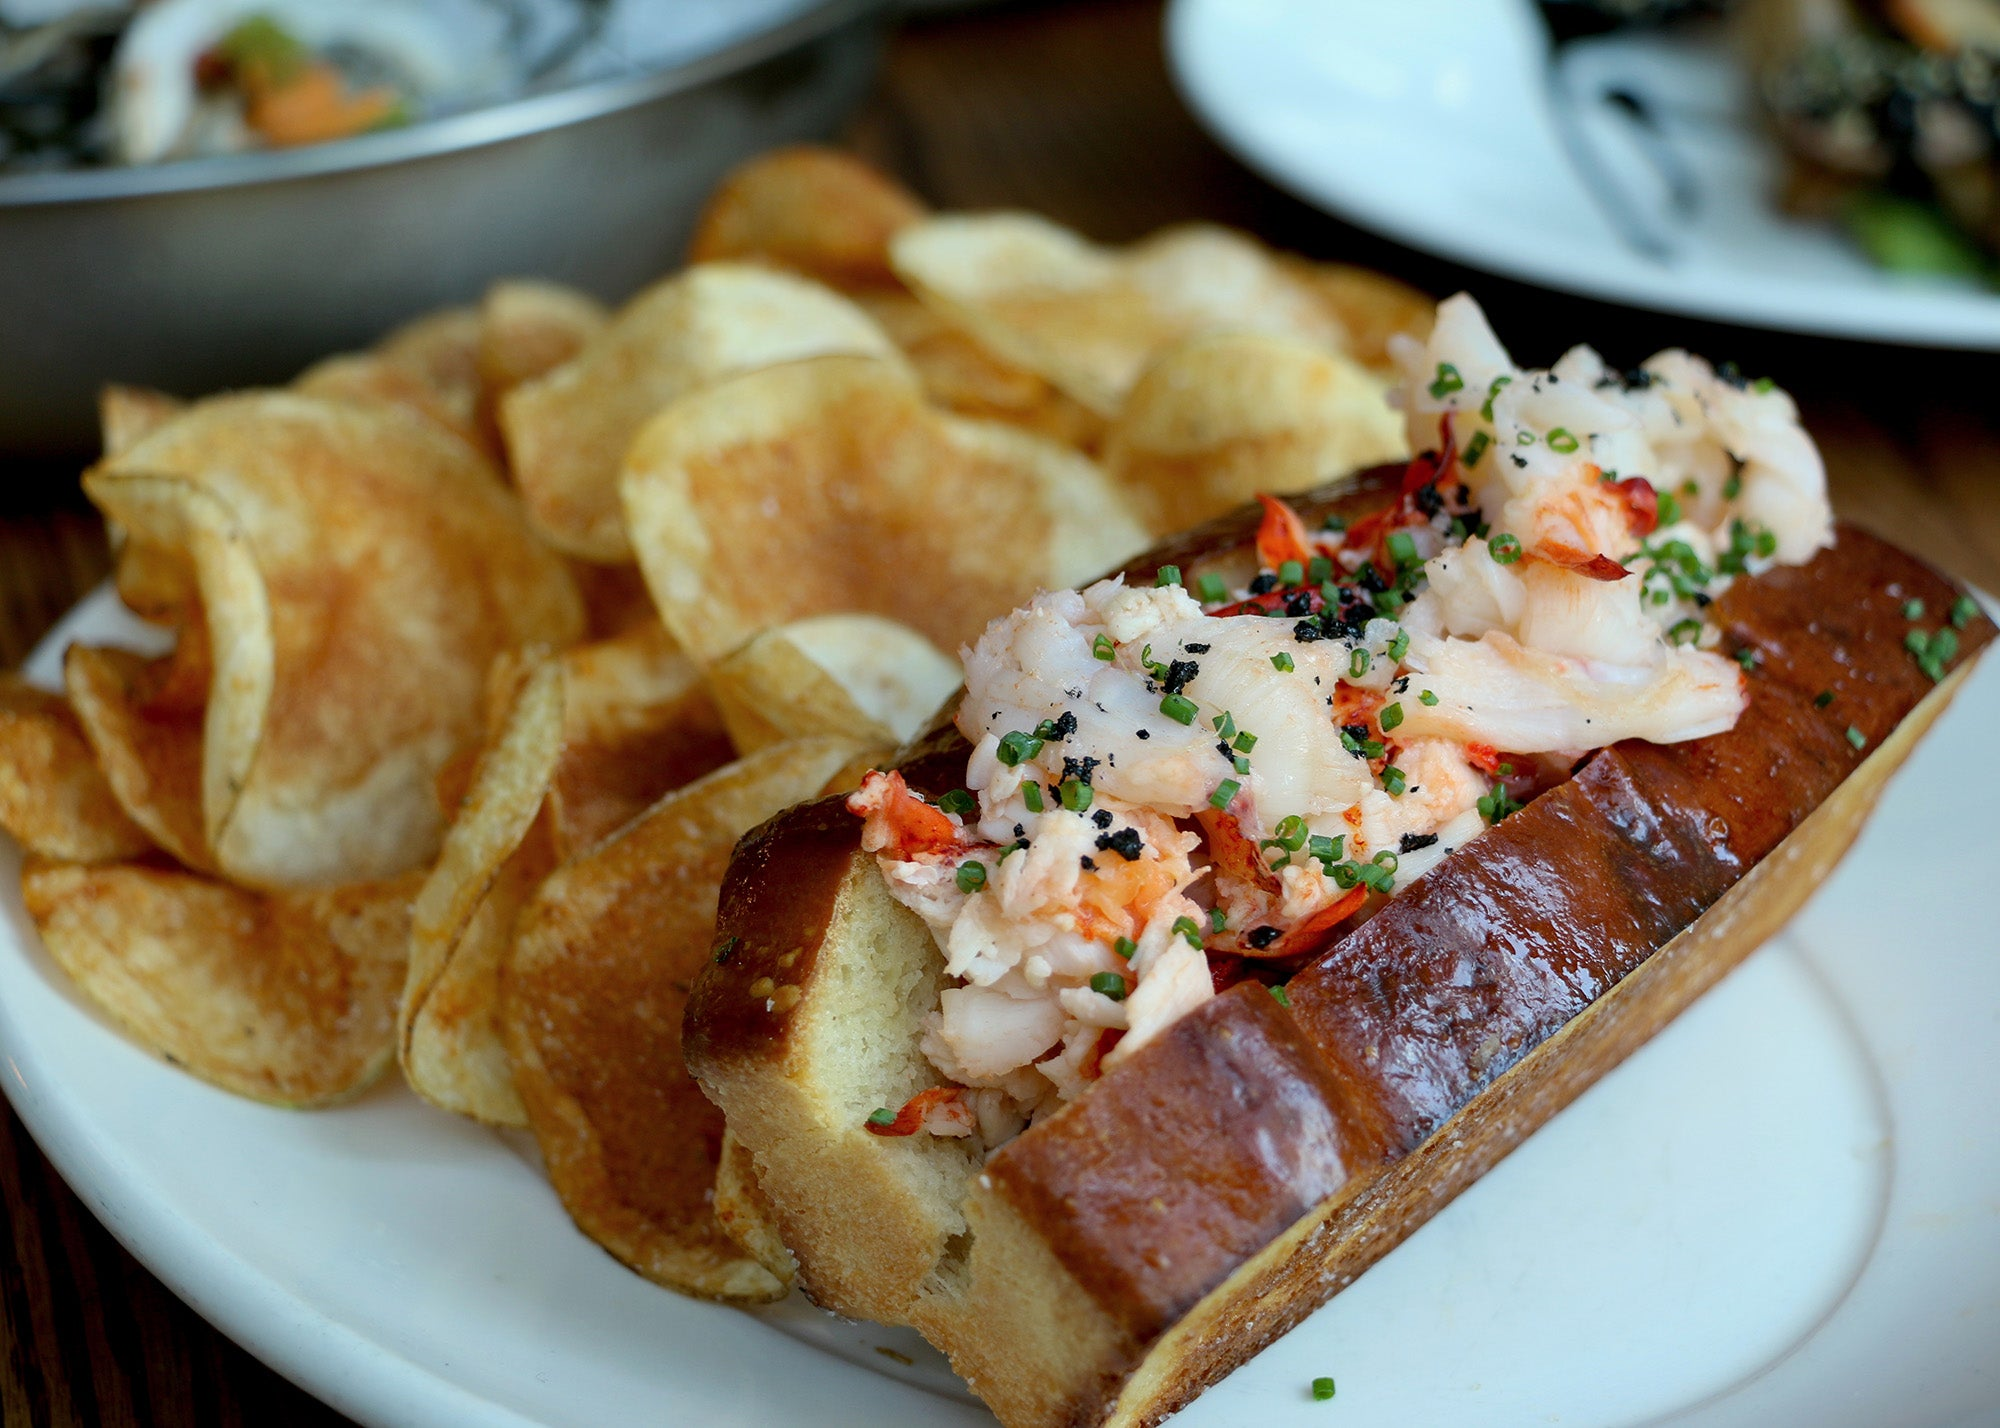 Lobster roll at The Banks Fish House